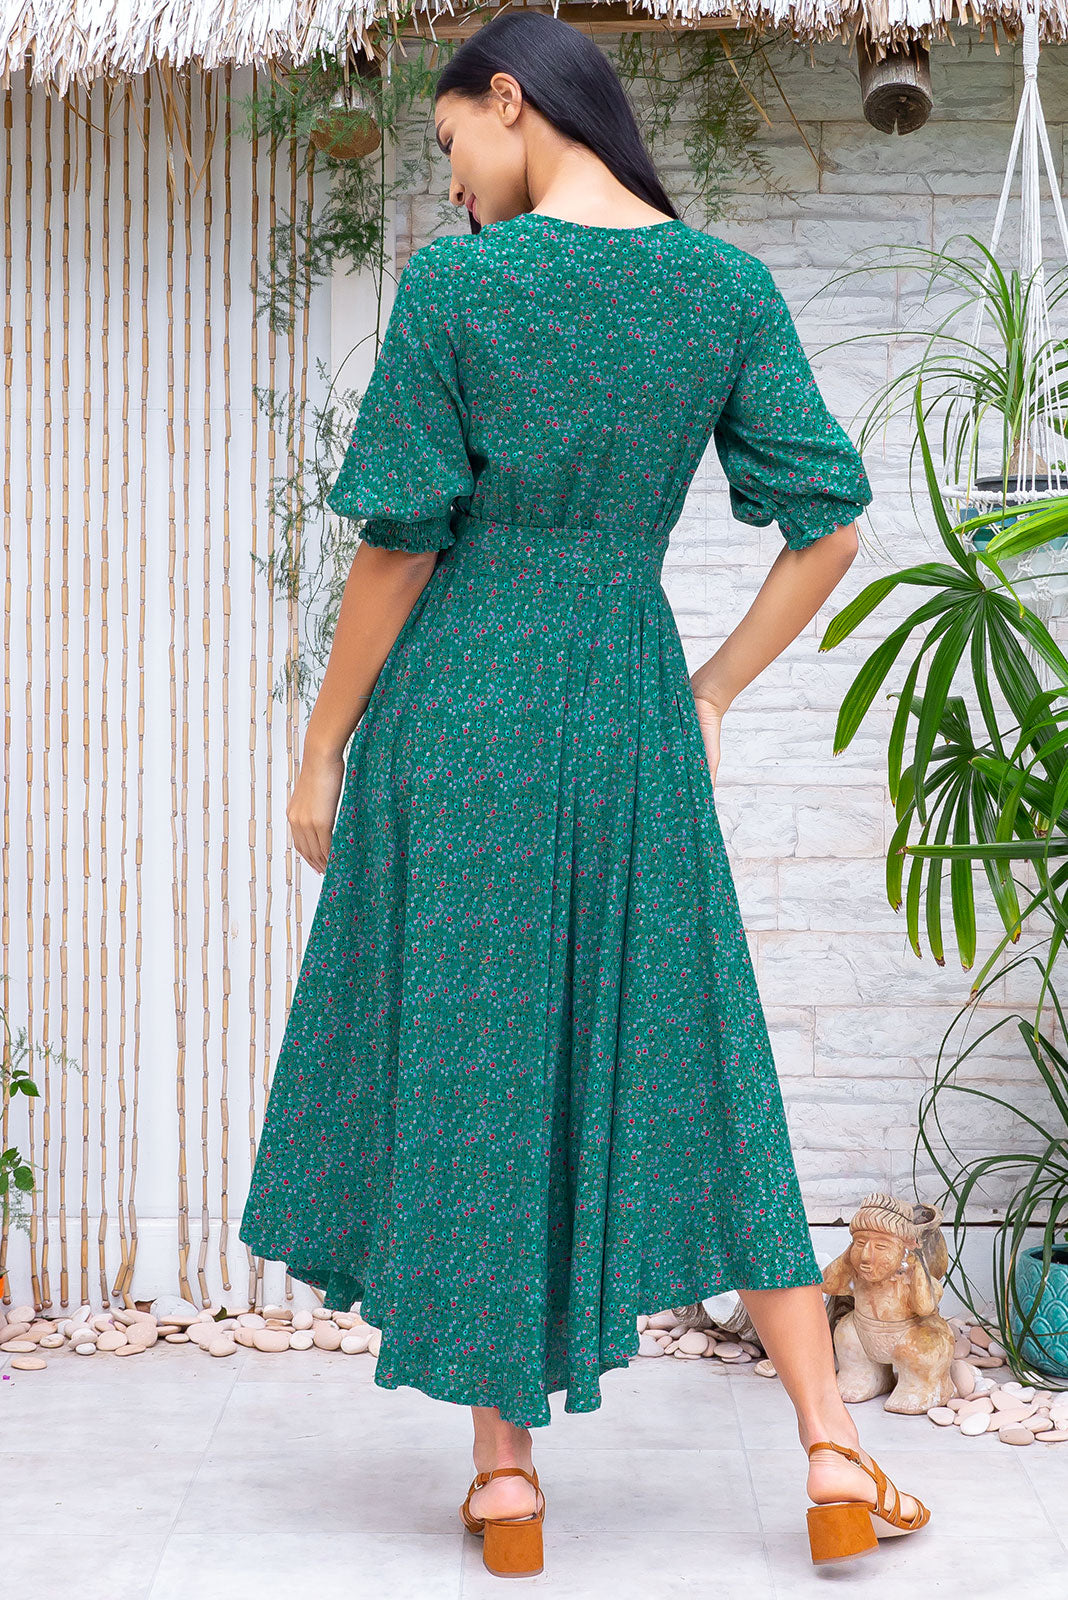 The Primrose Turkish Teal Dress is a V neckline midi dress featuring functional buttons from bust to waist, elasticated back waistband, 3/4 sleeve with shirring cuffs, side pockets, slightly curved hemline and 100% rayon in deep, teal base with ditzy floral print.